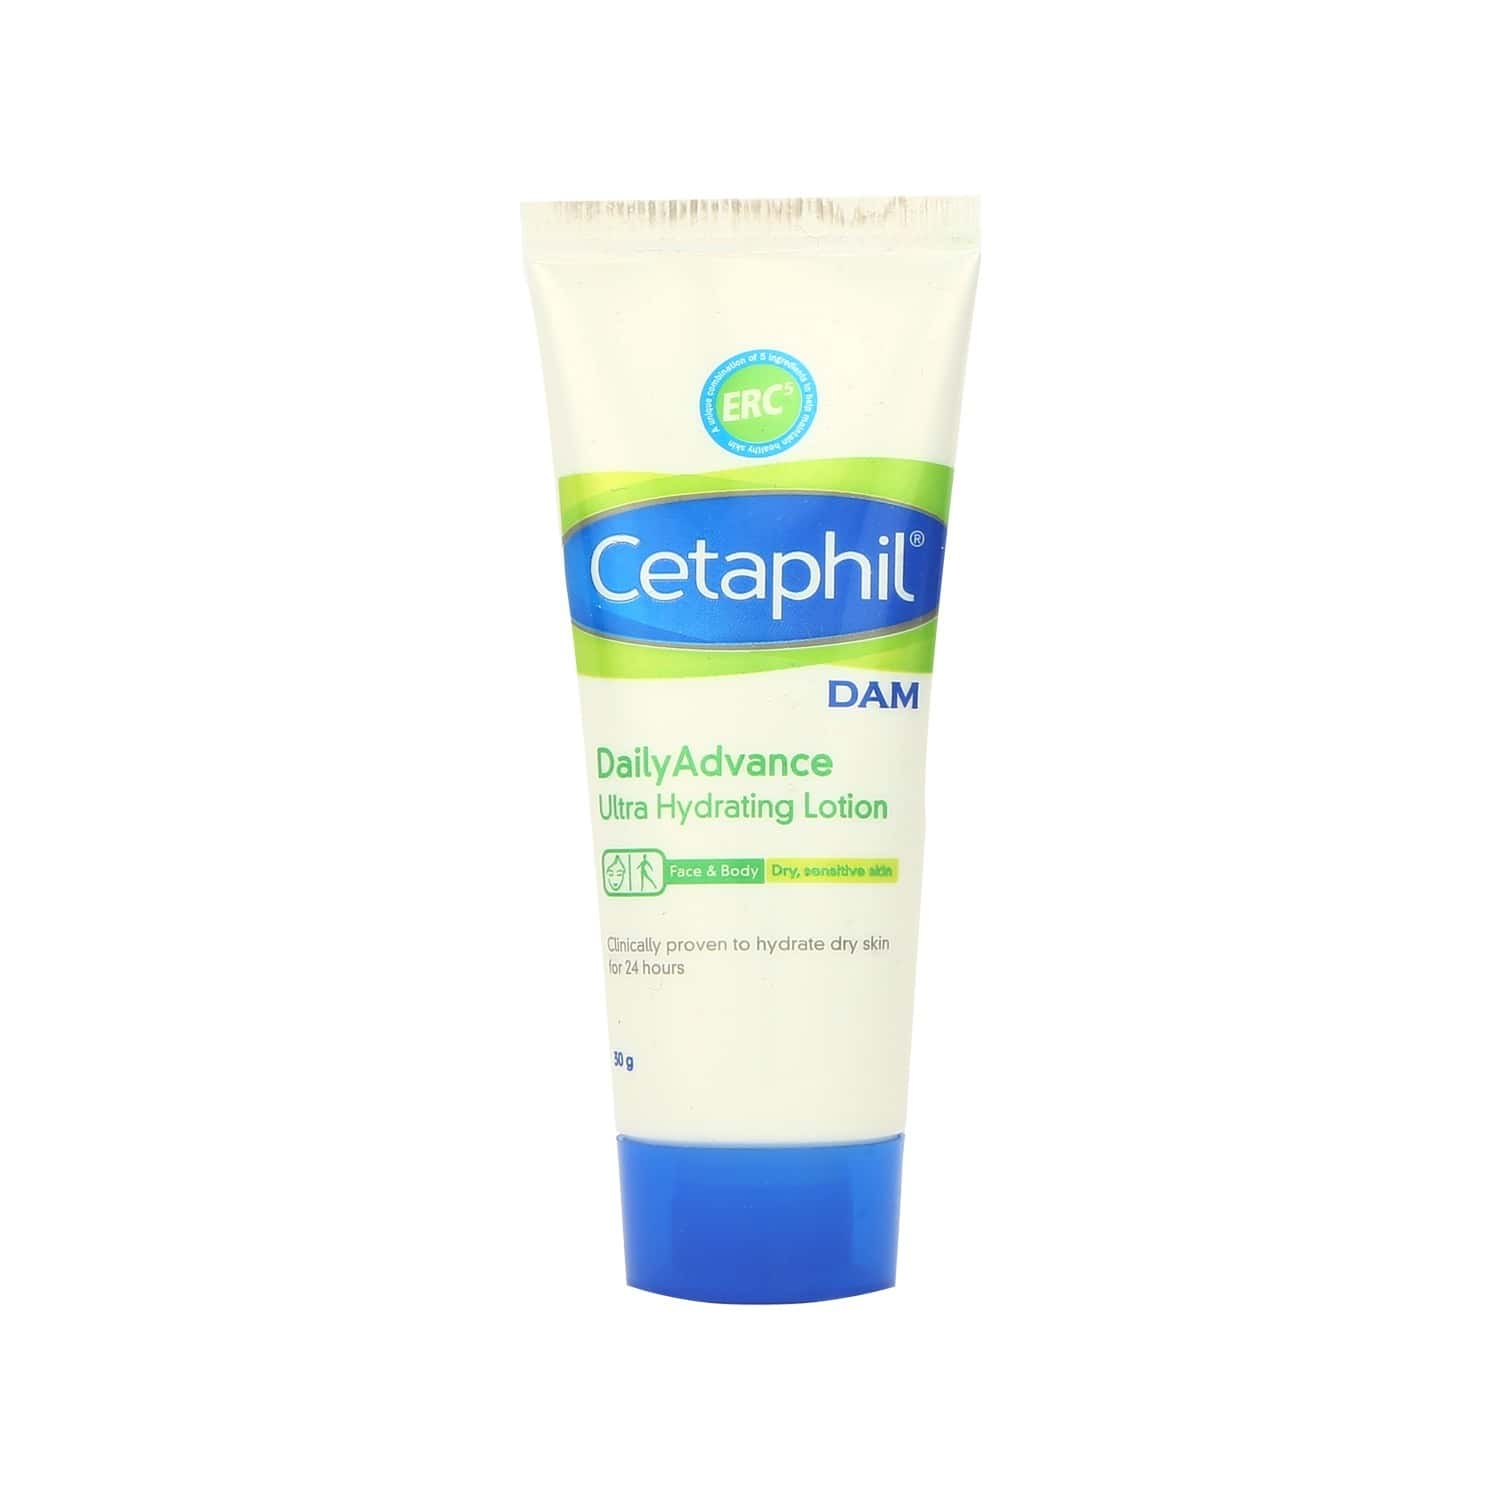 Cetaphil Dam Daily Advance Ultra Hydrating Lotion - 30g